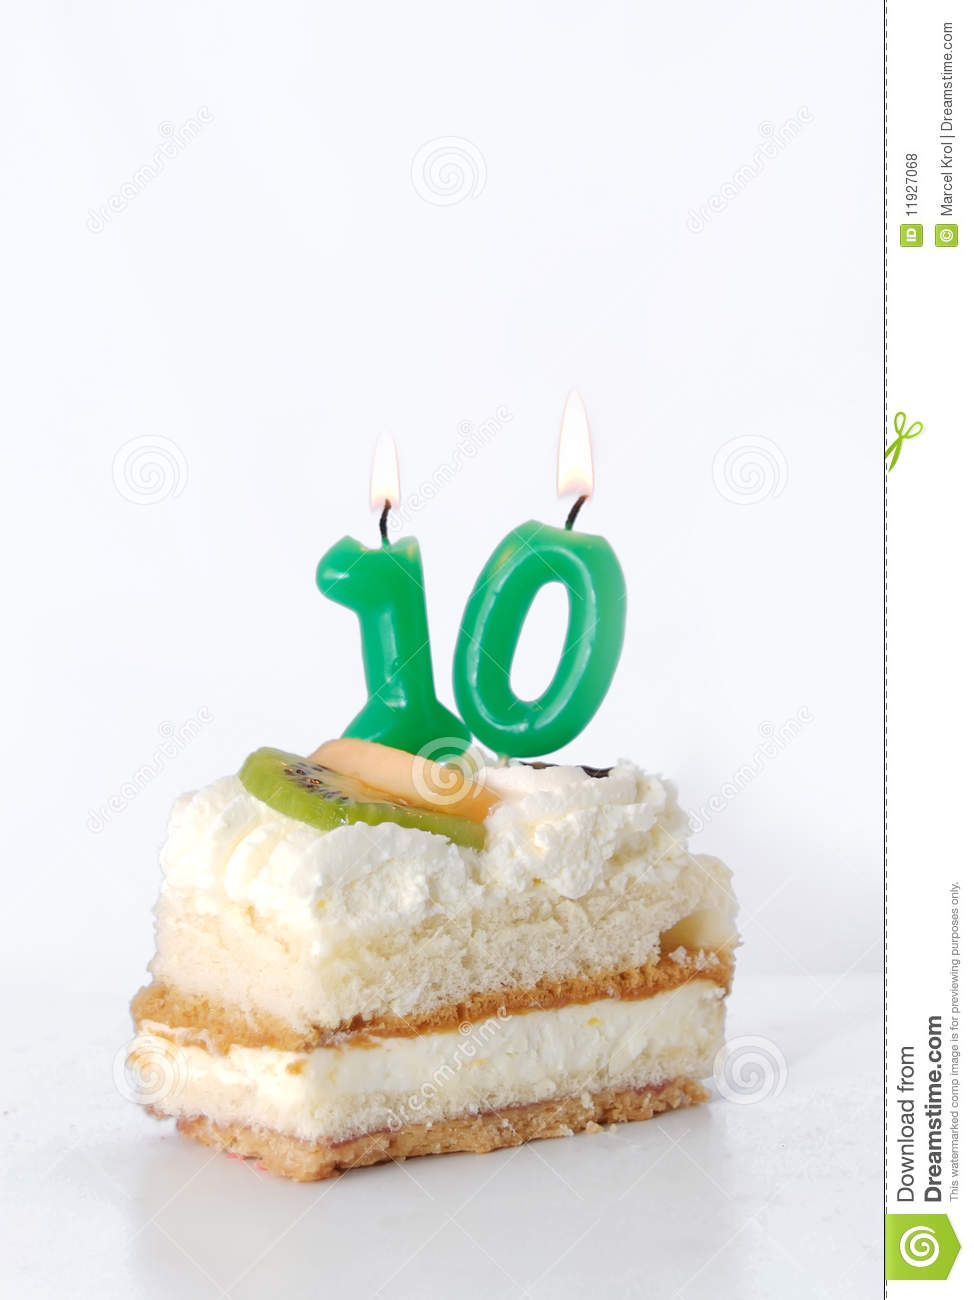 birthday cake with candles animation 6 on birthday cake with candles animation